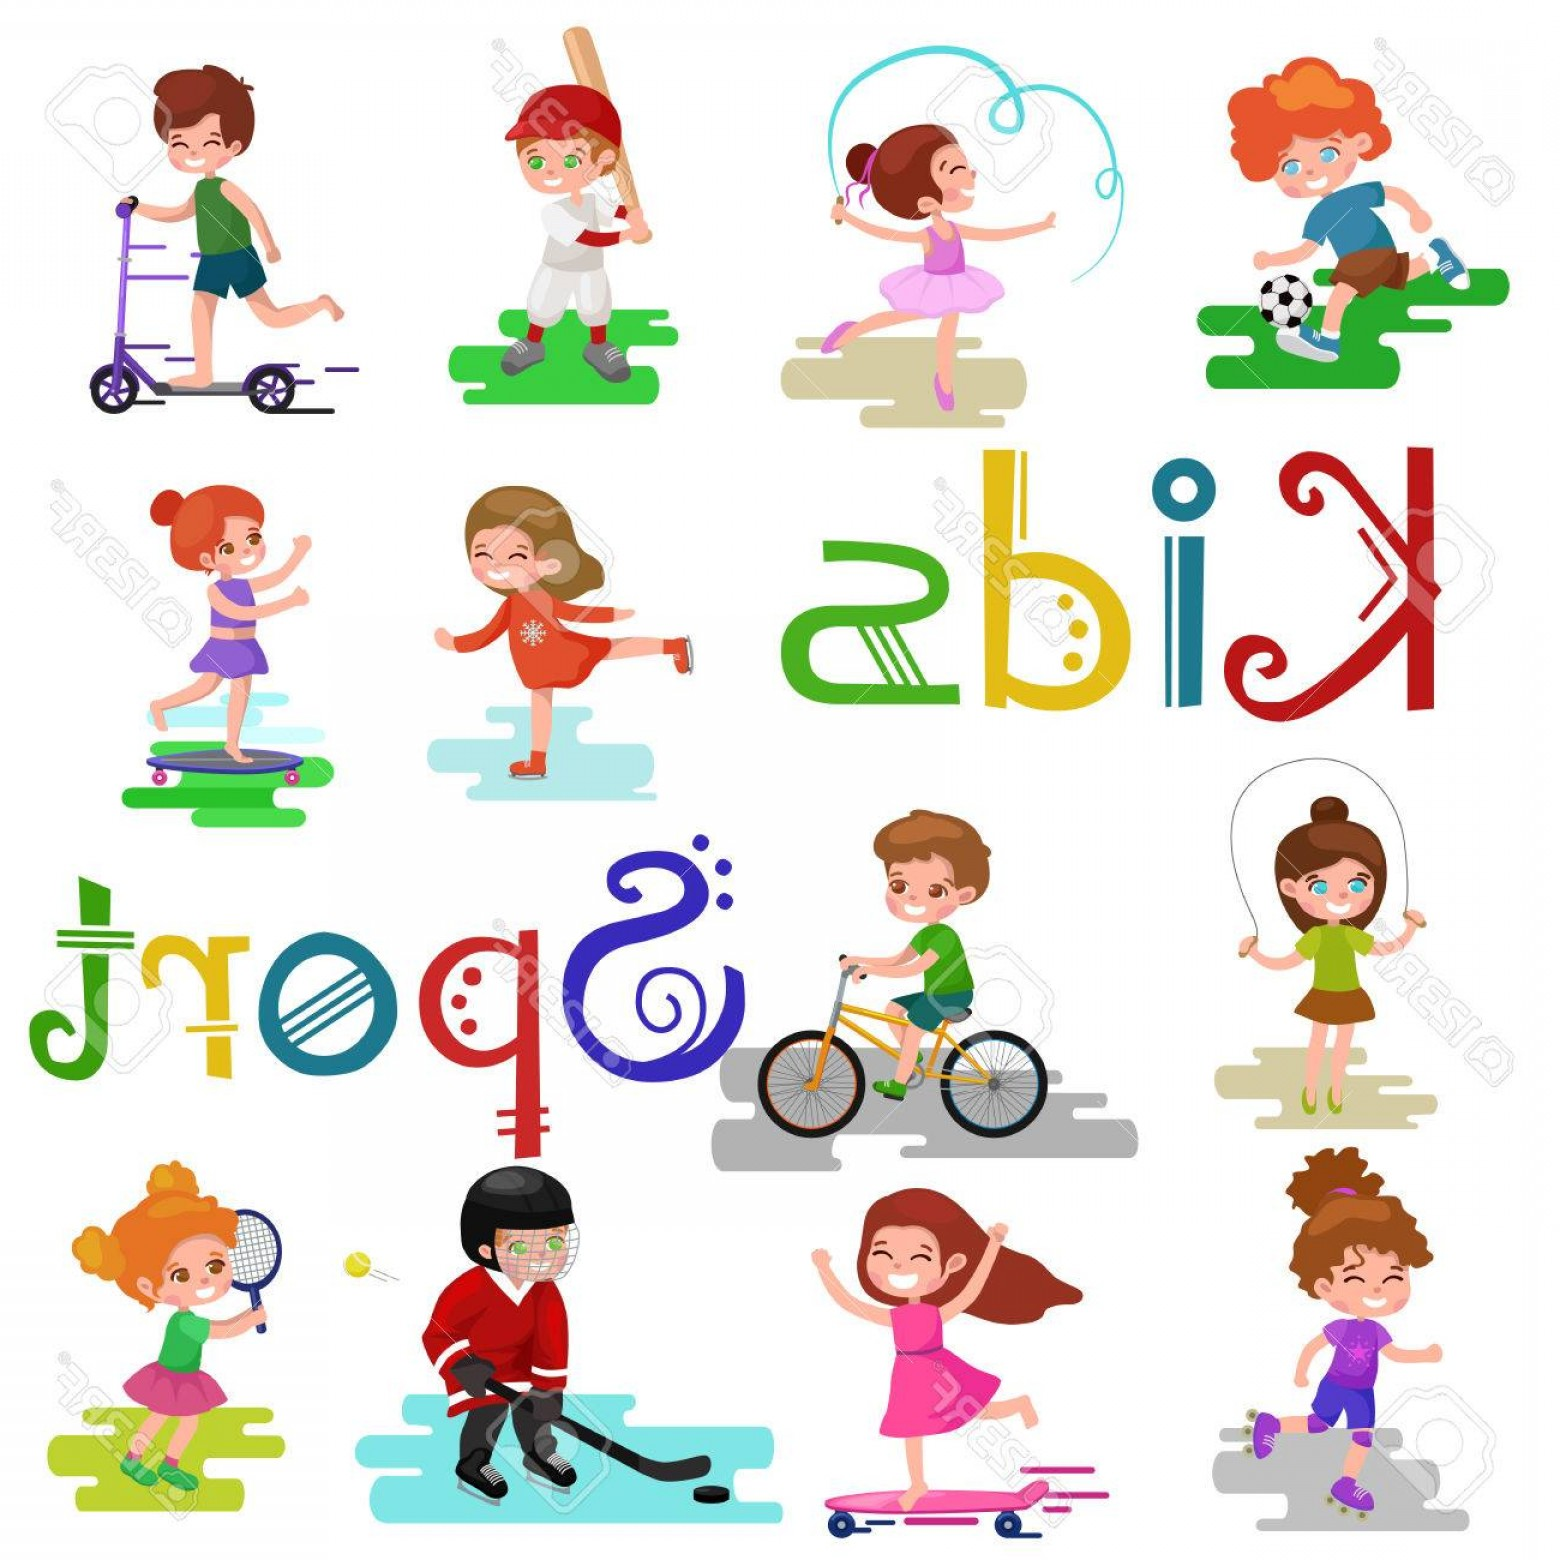 Sport Vector Art Games: Photostock Vector Kids Sport Isolated Boy And Girl Playing Active Games Vector Illustration